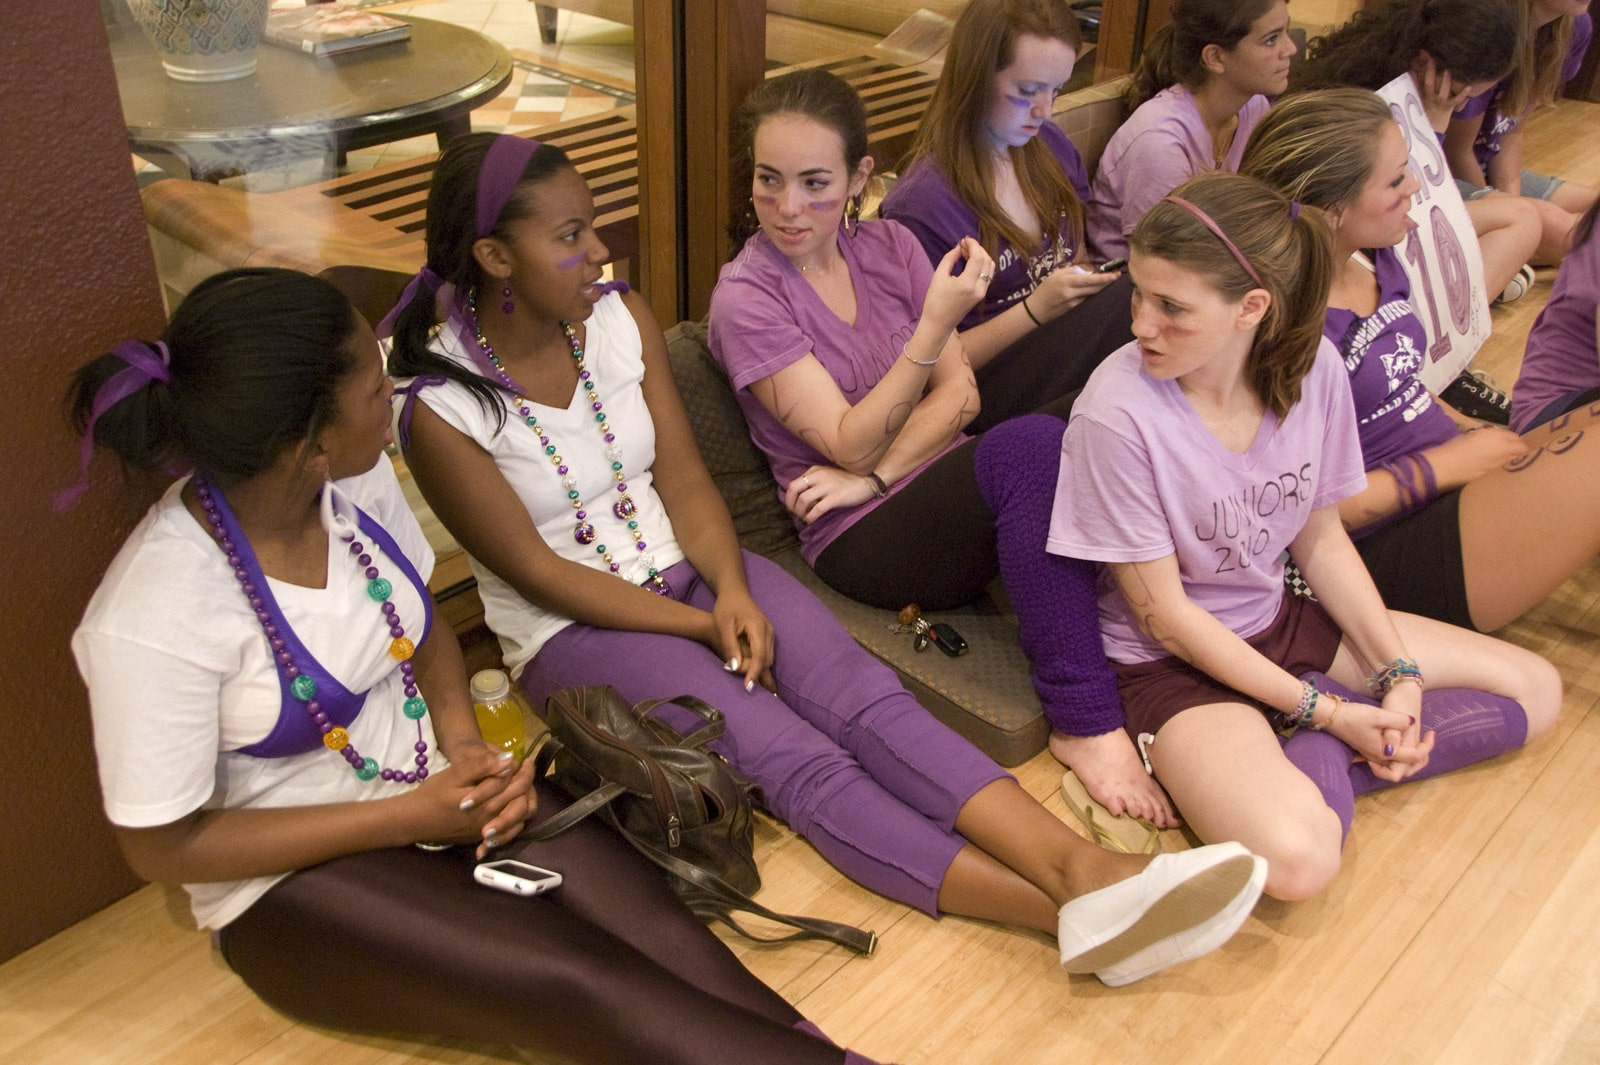 Influential students can halve bullying incidents at school